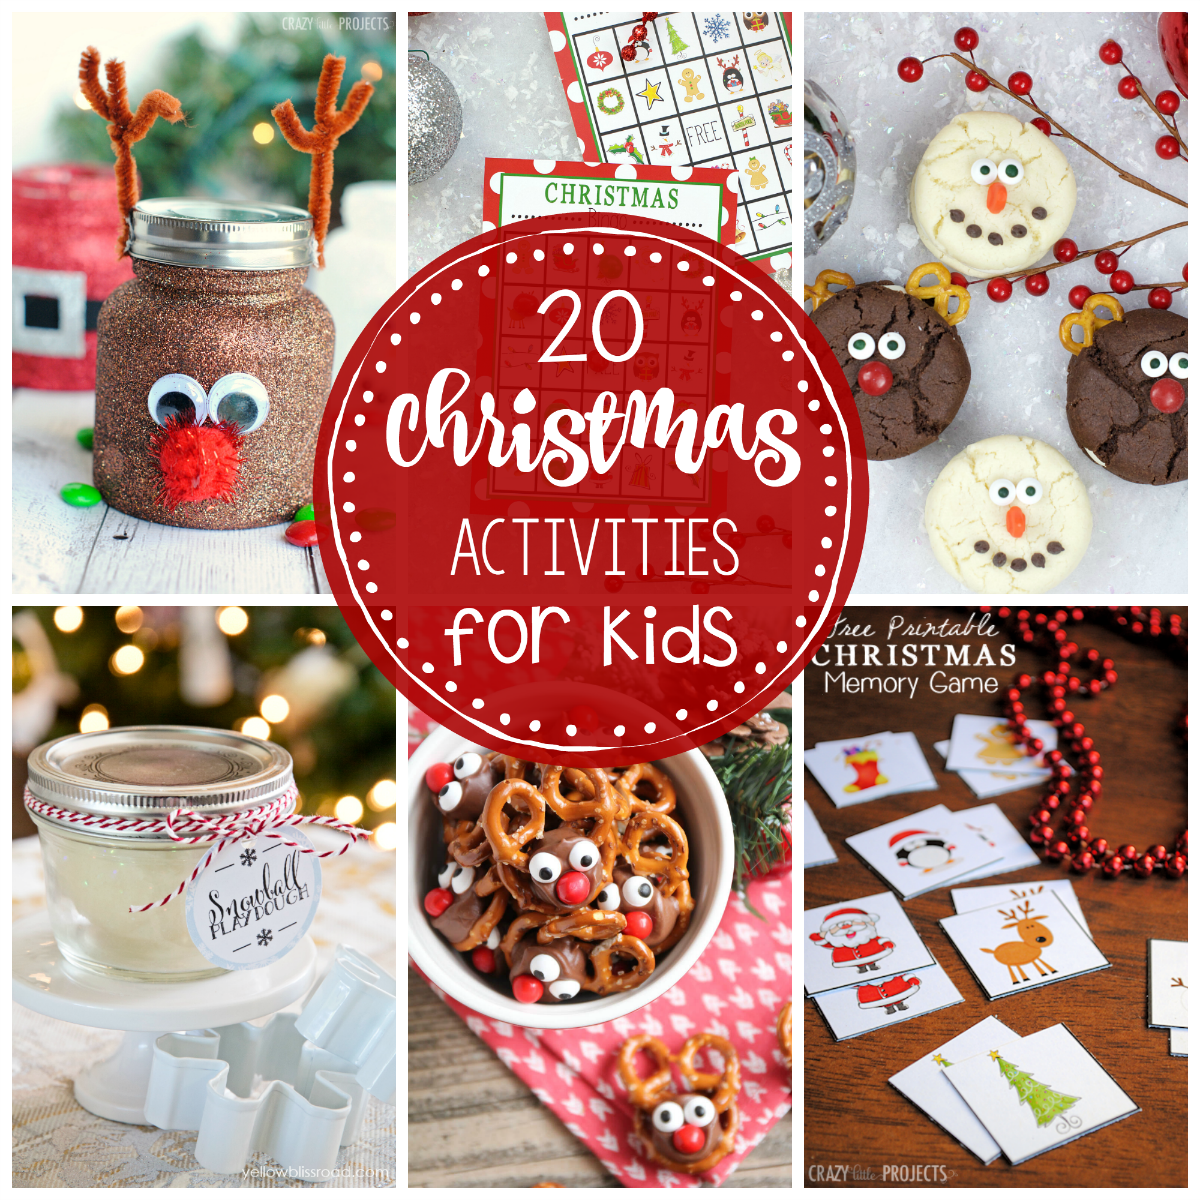 Christmas In July Sale Ideas.25 Fun Christmas Activities For Kids Crazy Little Projects